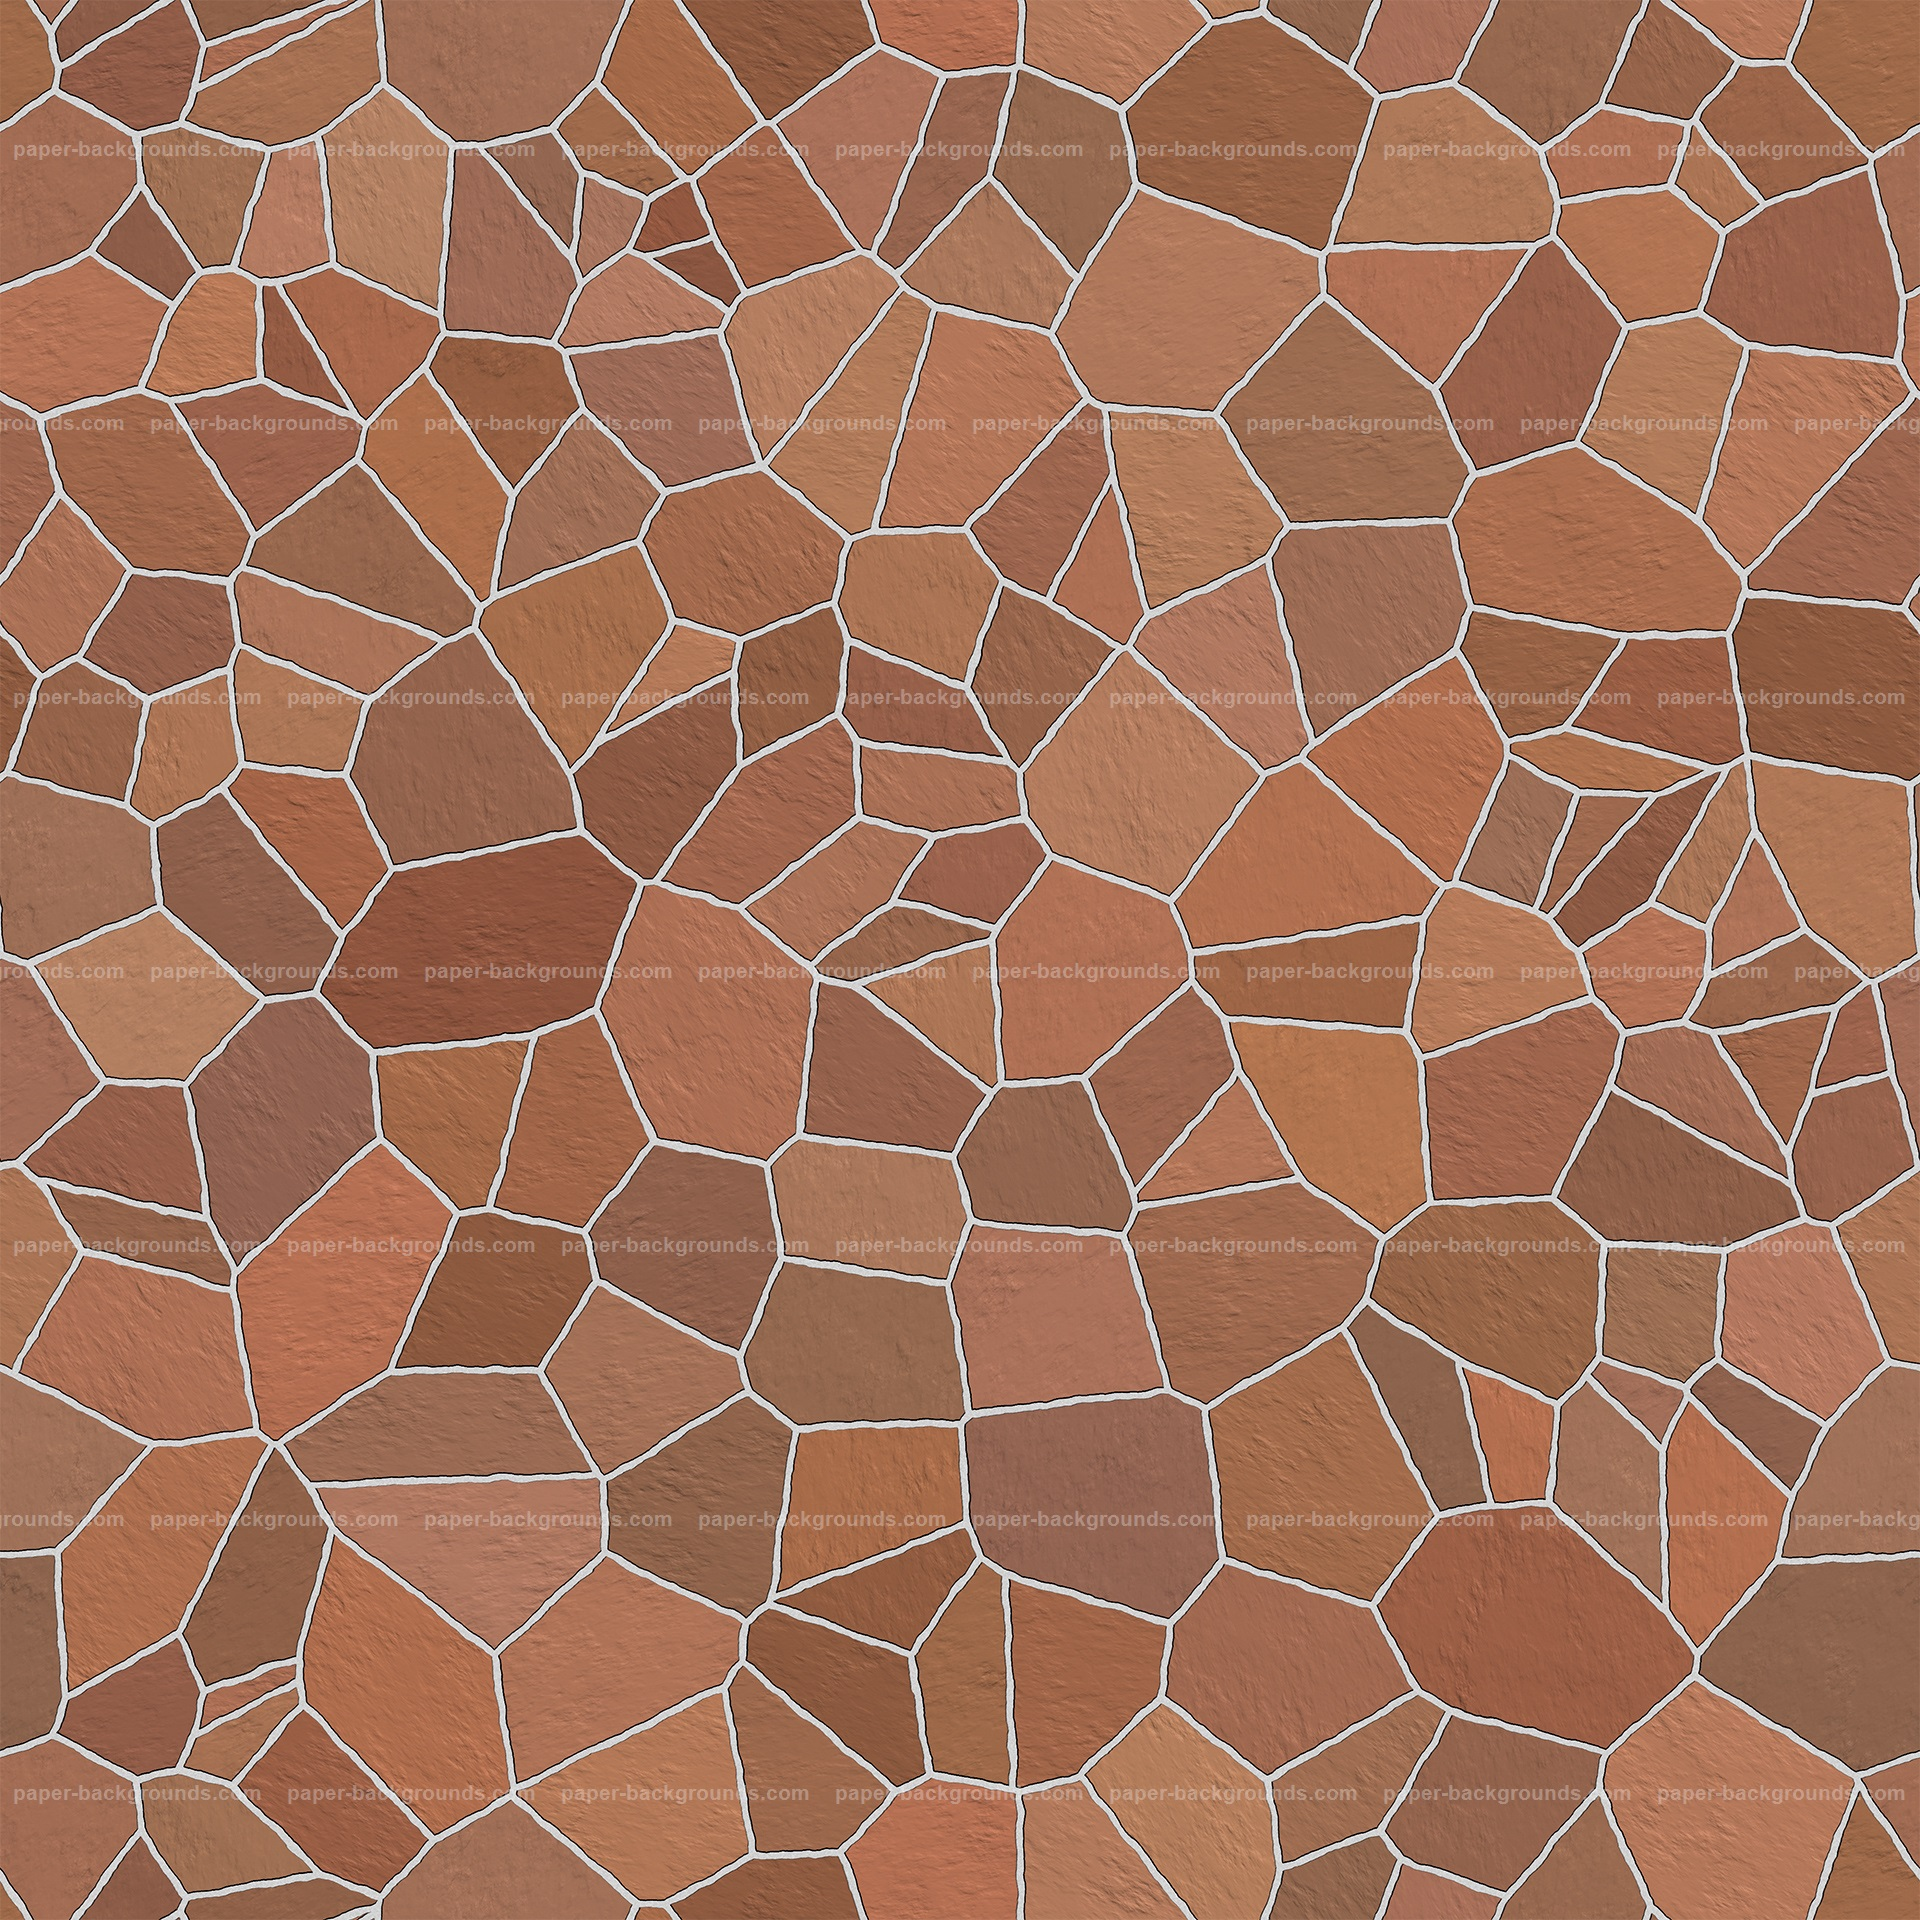 Paper Backgrounds Seamless Textures Royalty Free HD